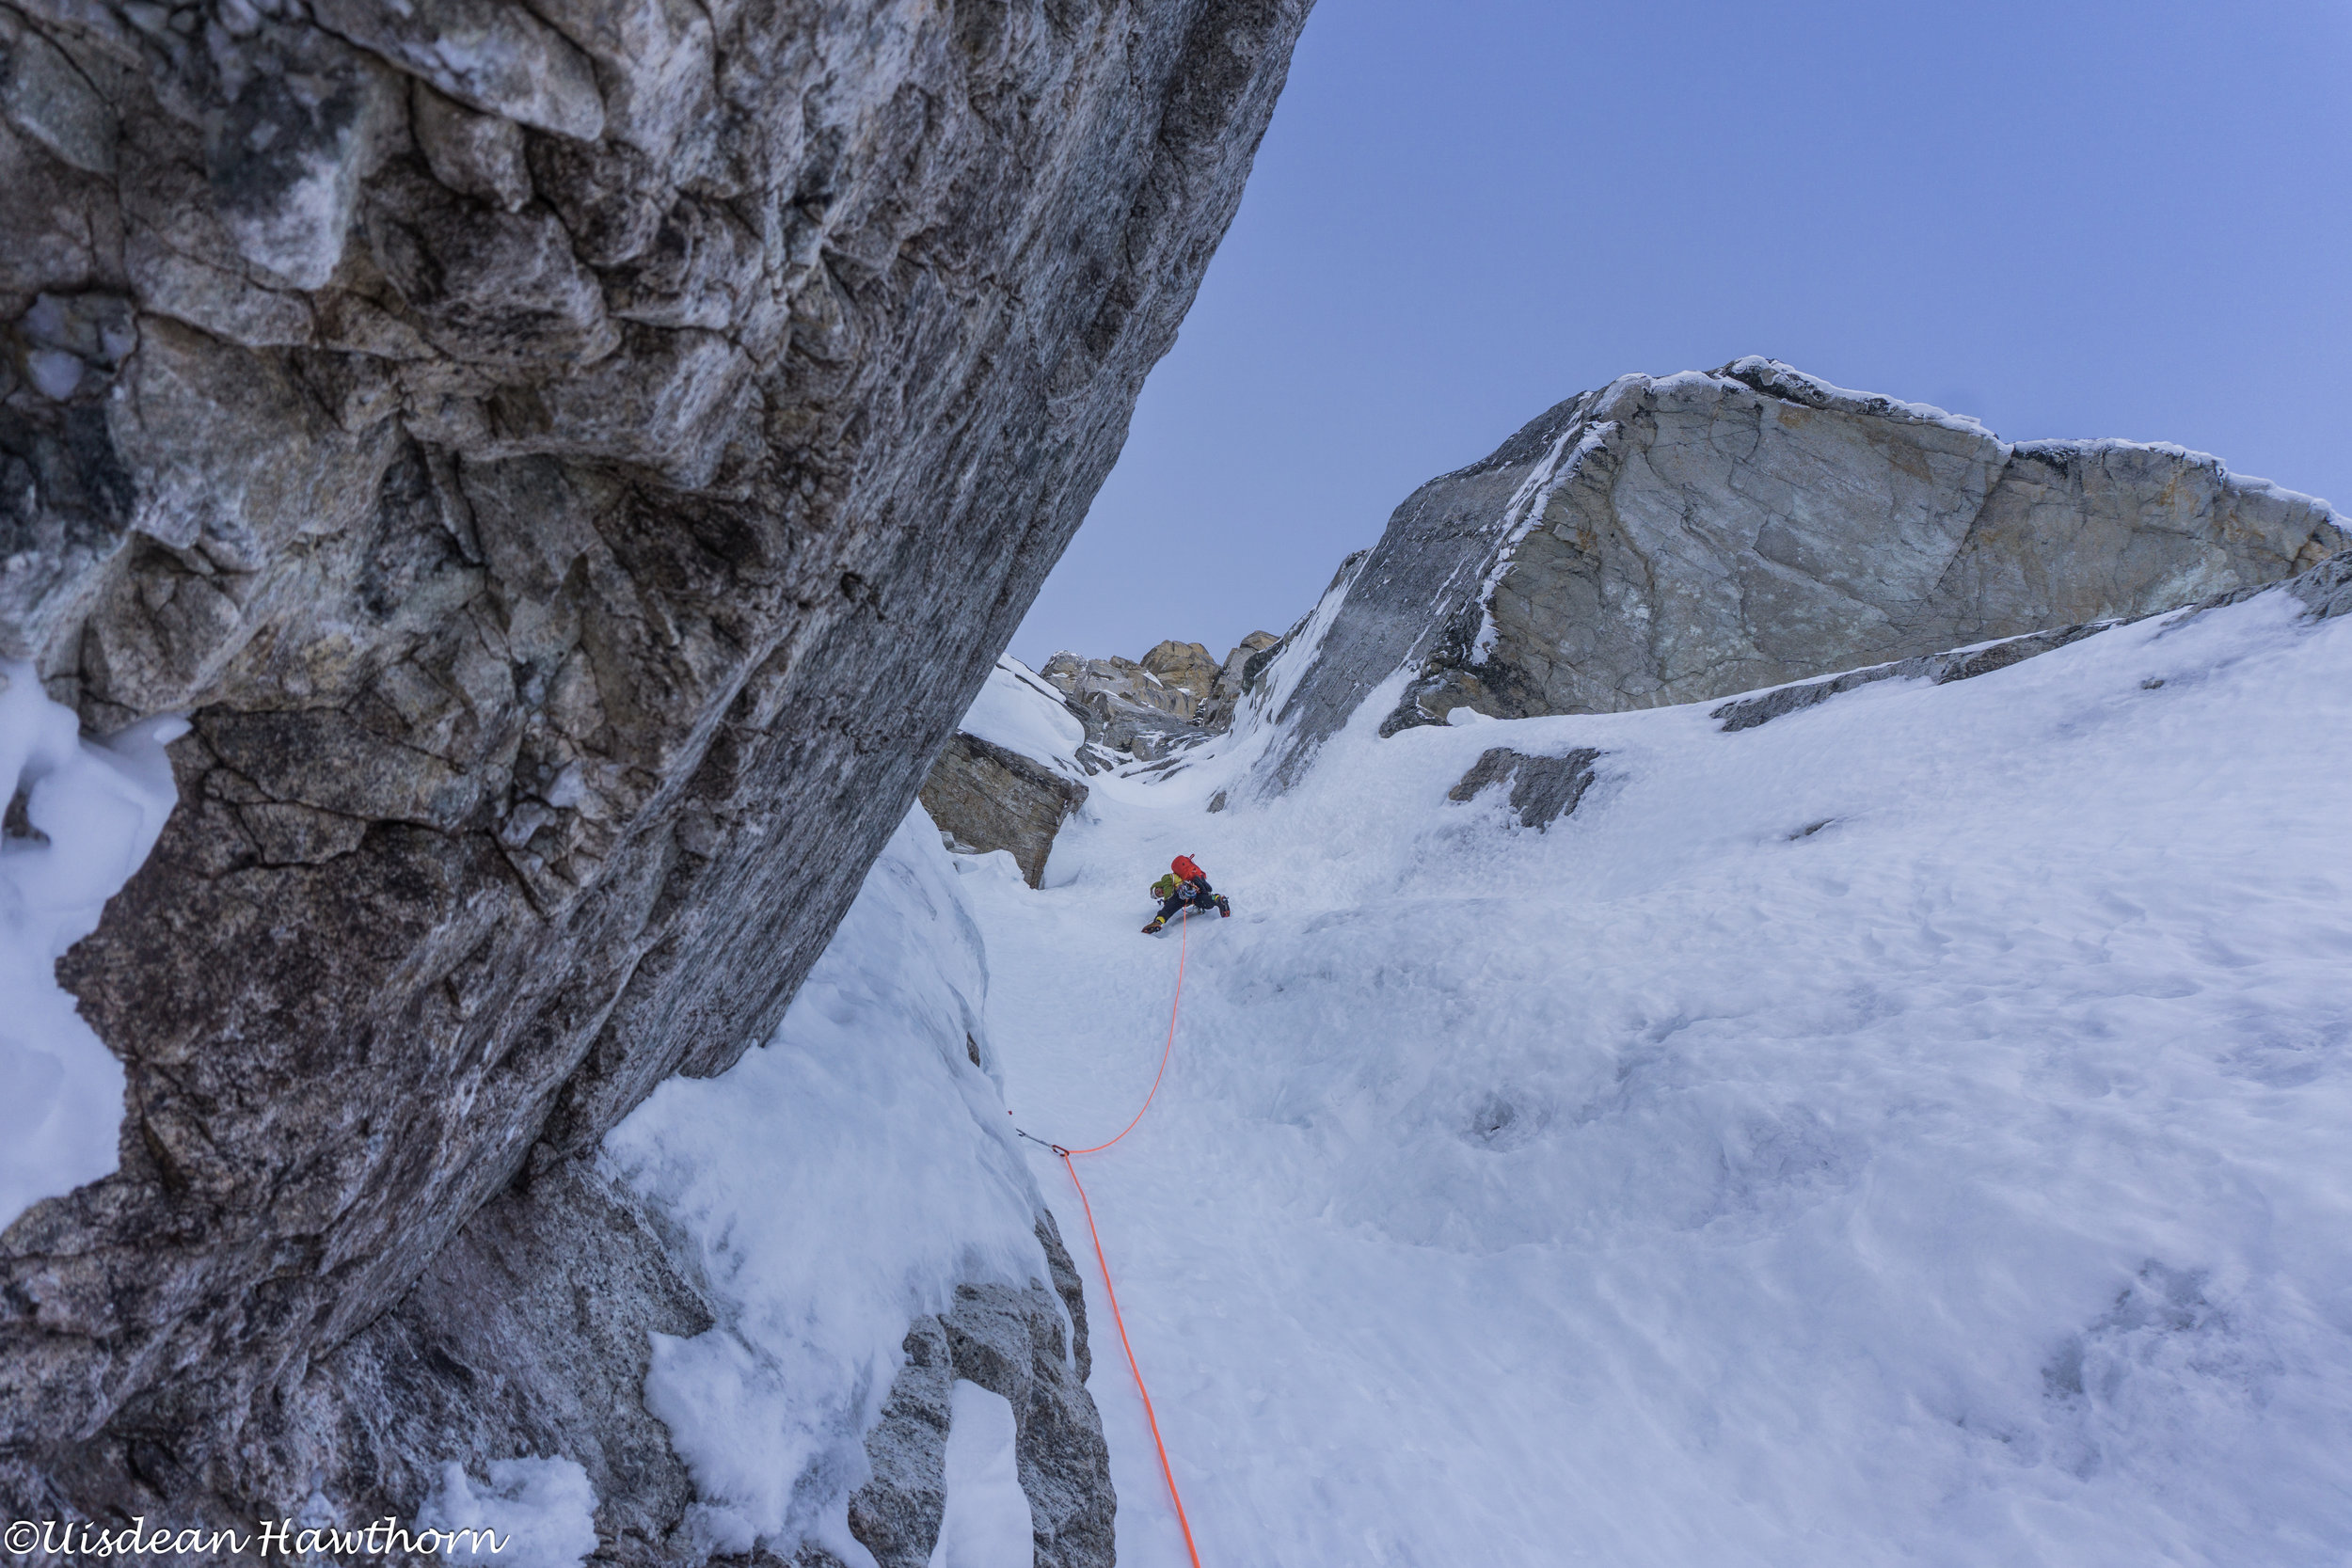 P4 of our N face attempt. Steep neve and not much gear.